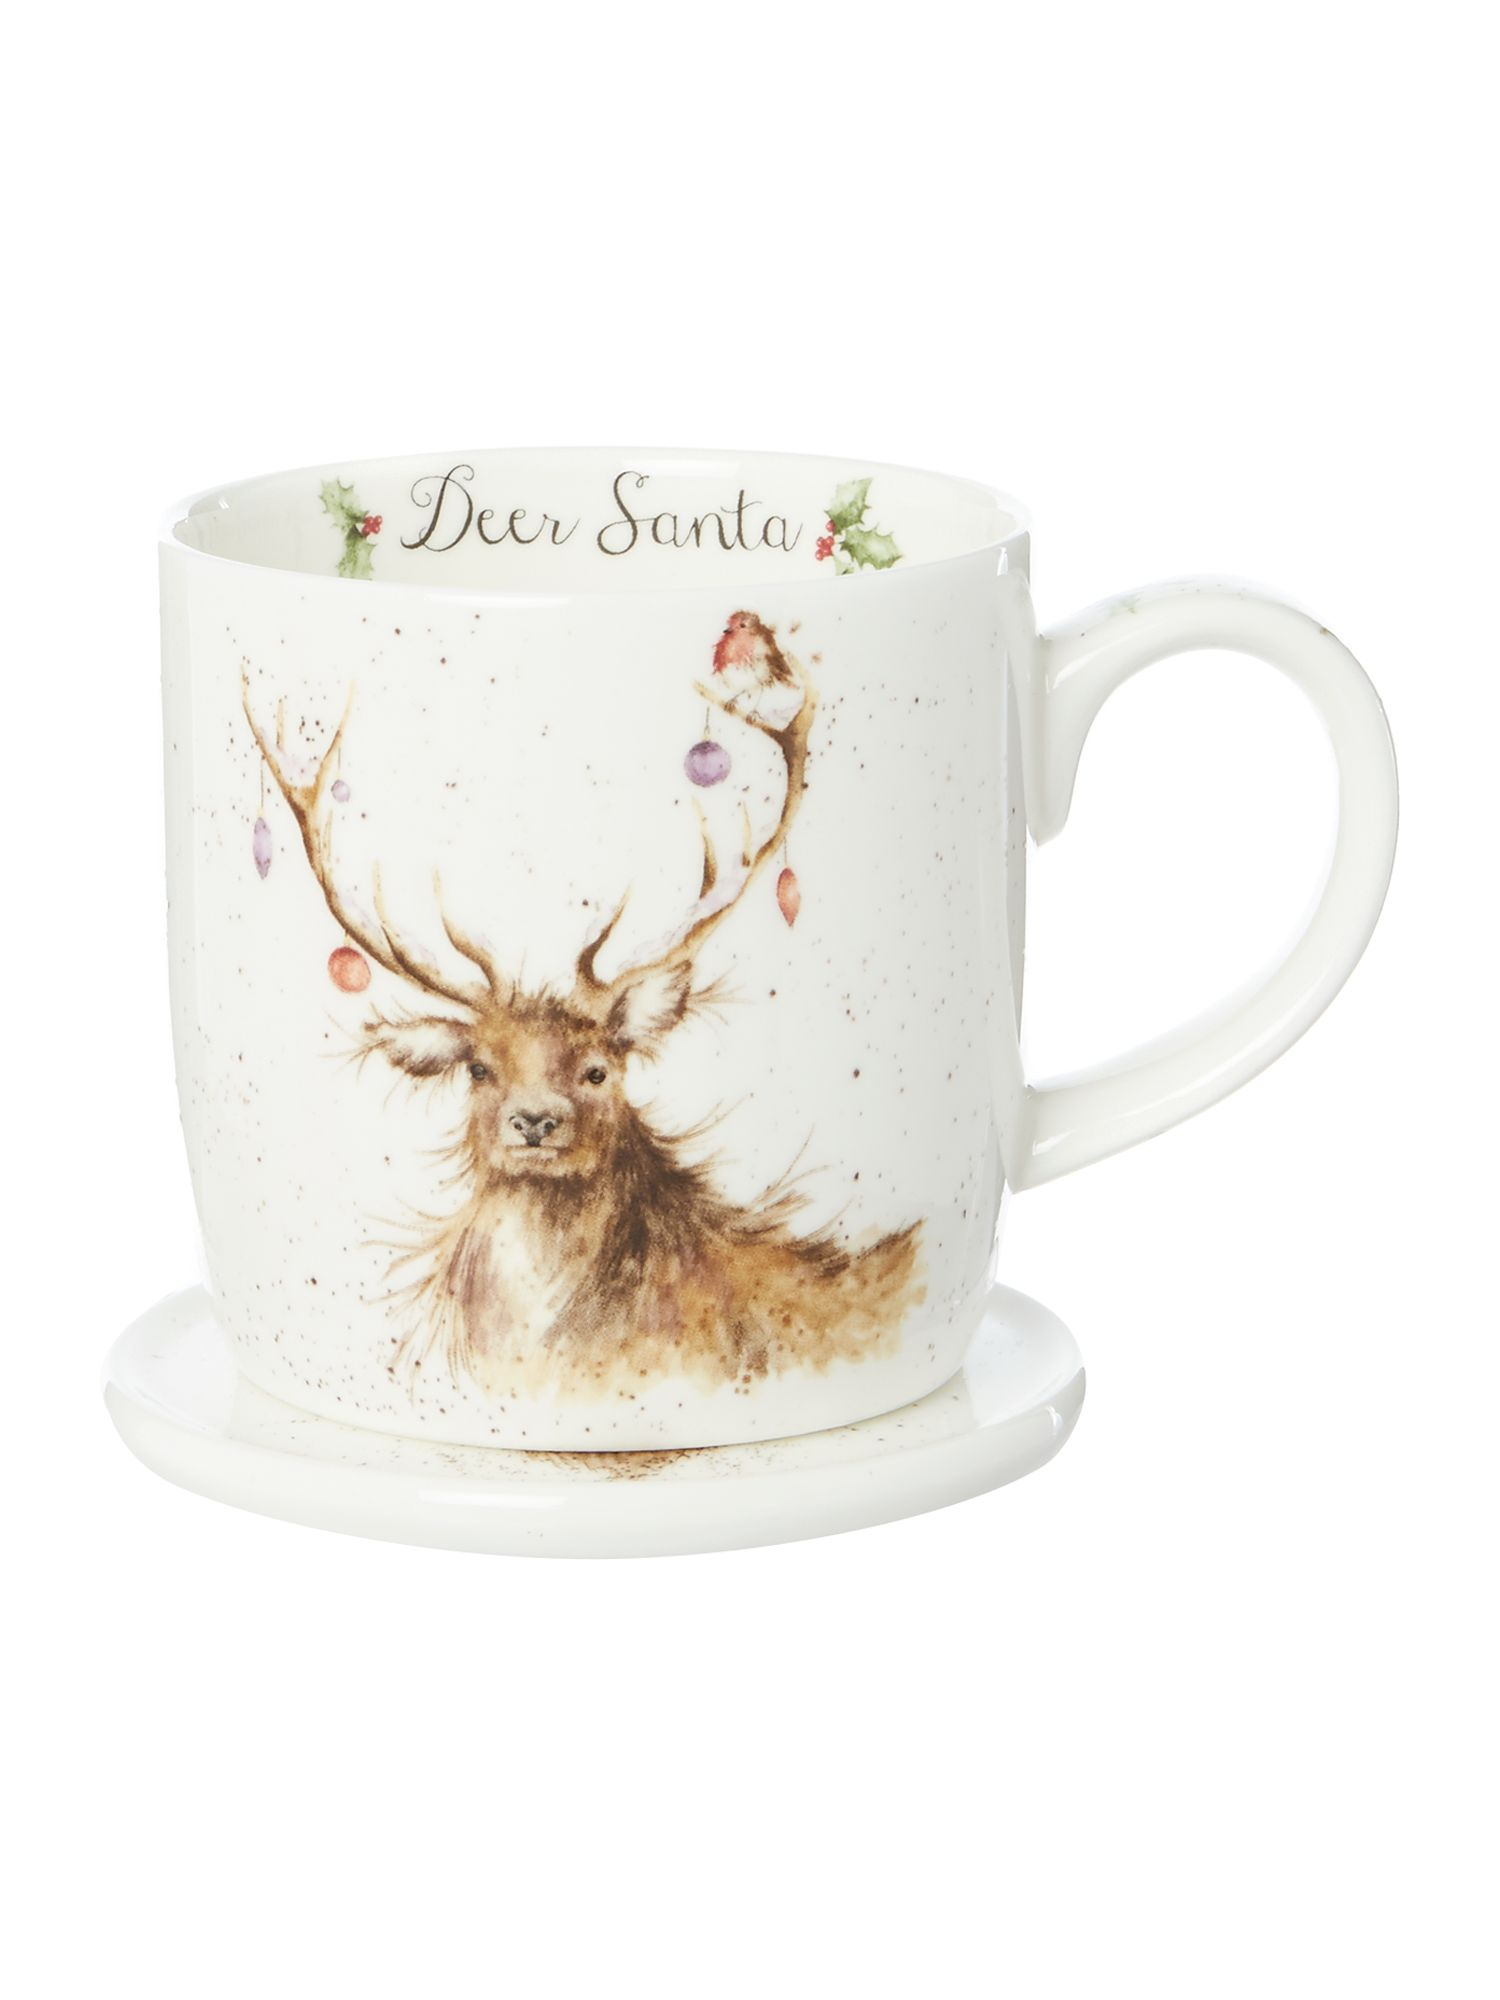 Royal Worcester Royal Worcester Wrendale deer santa mug & coaster set